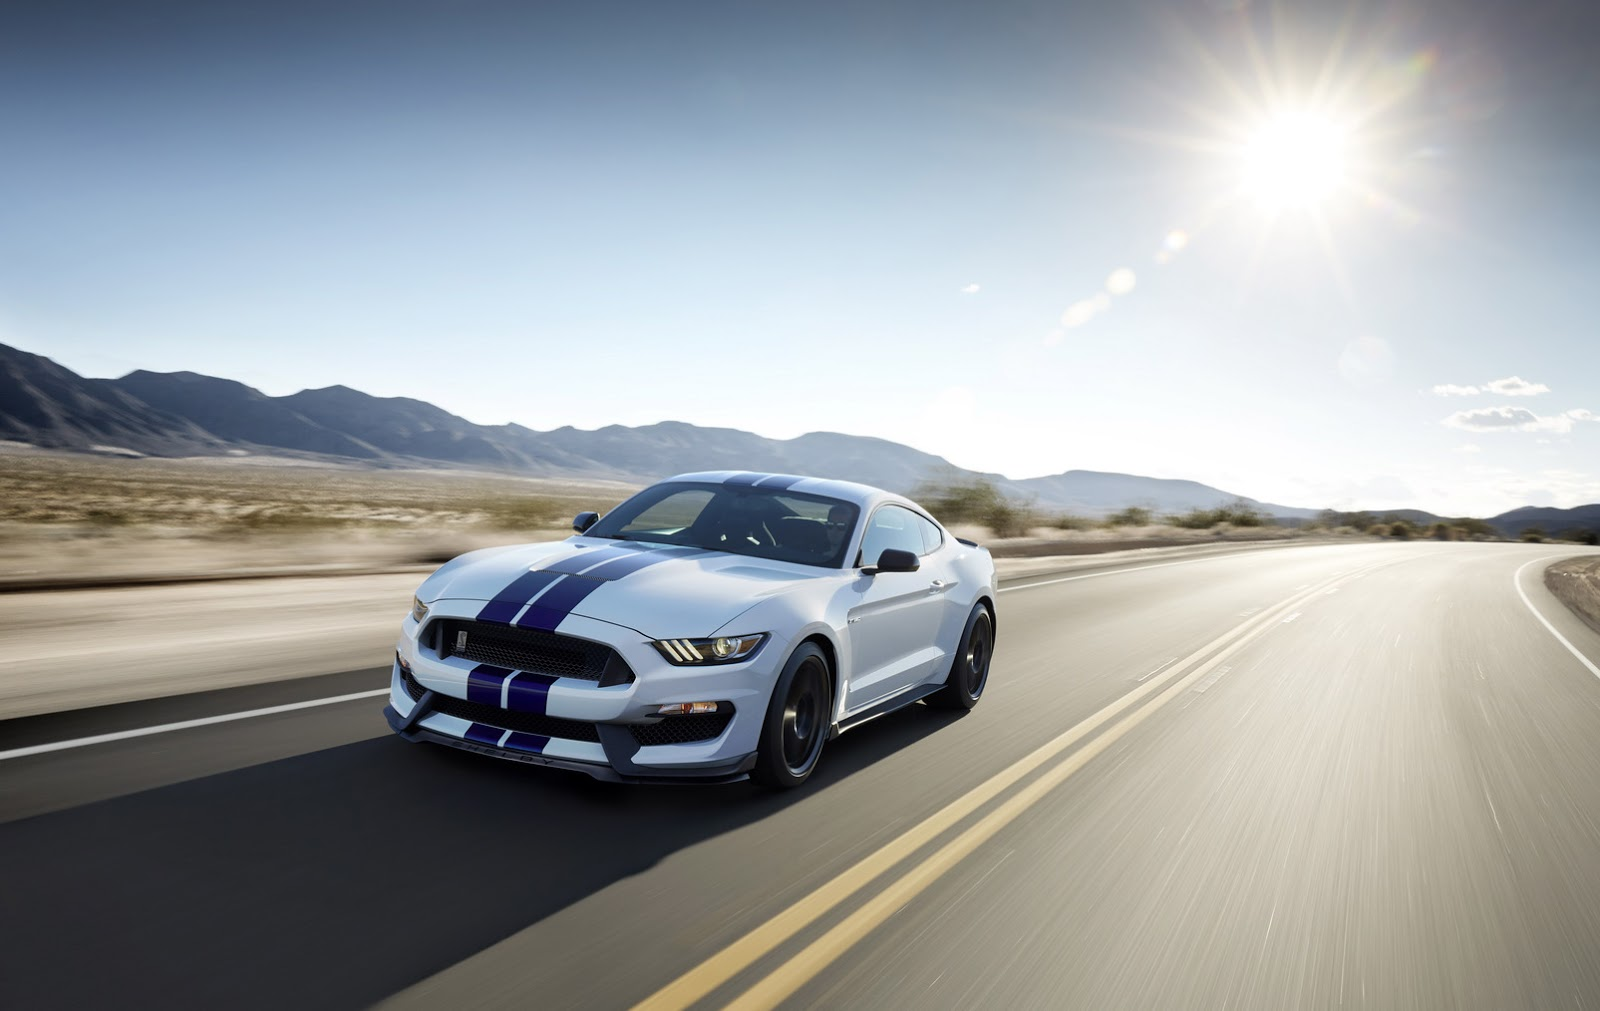 New-Ford-Mustang-Shelby-GT350-21.jpg